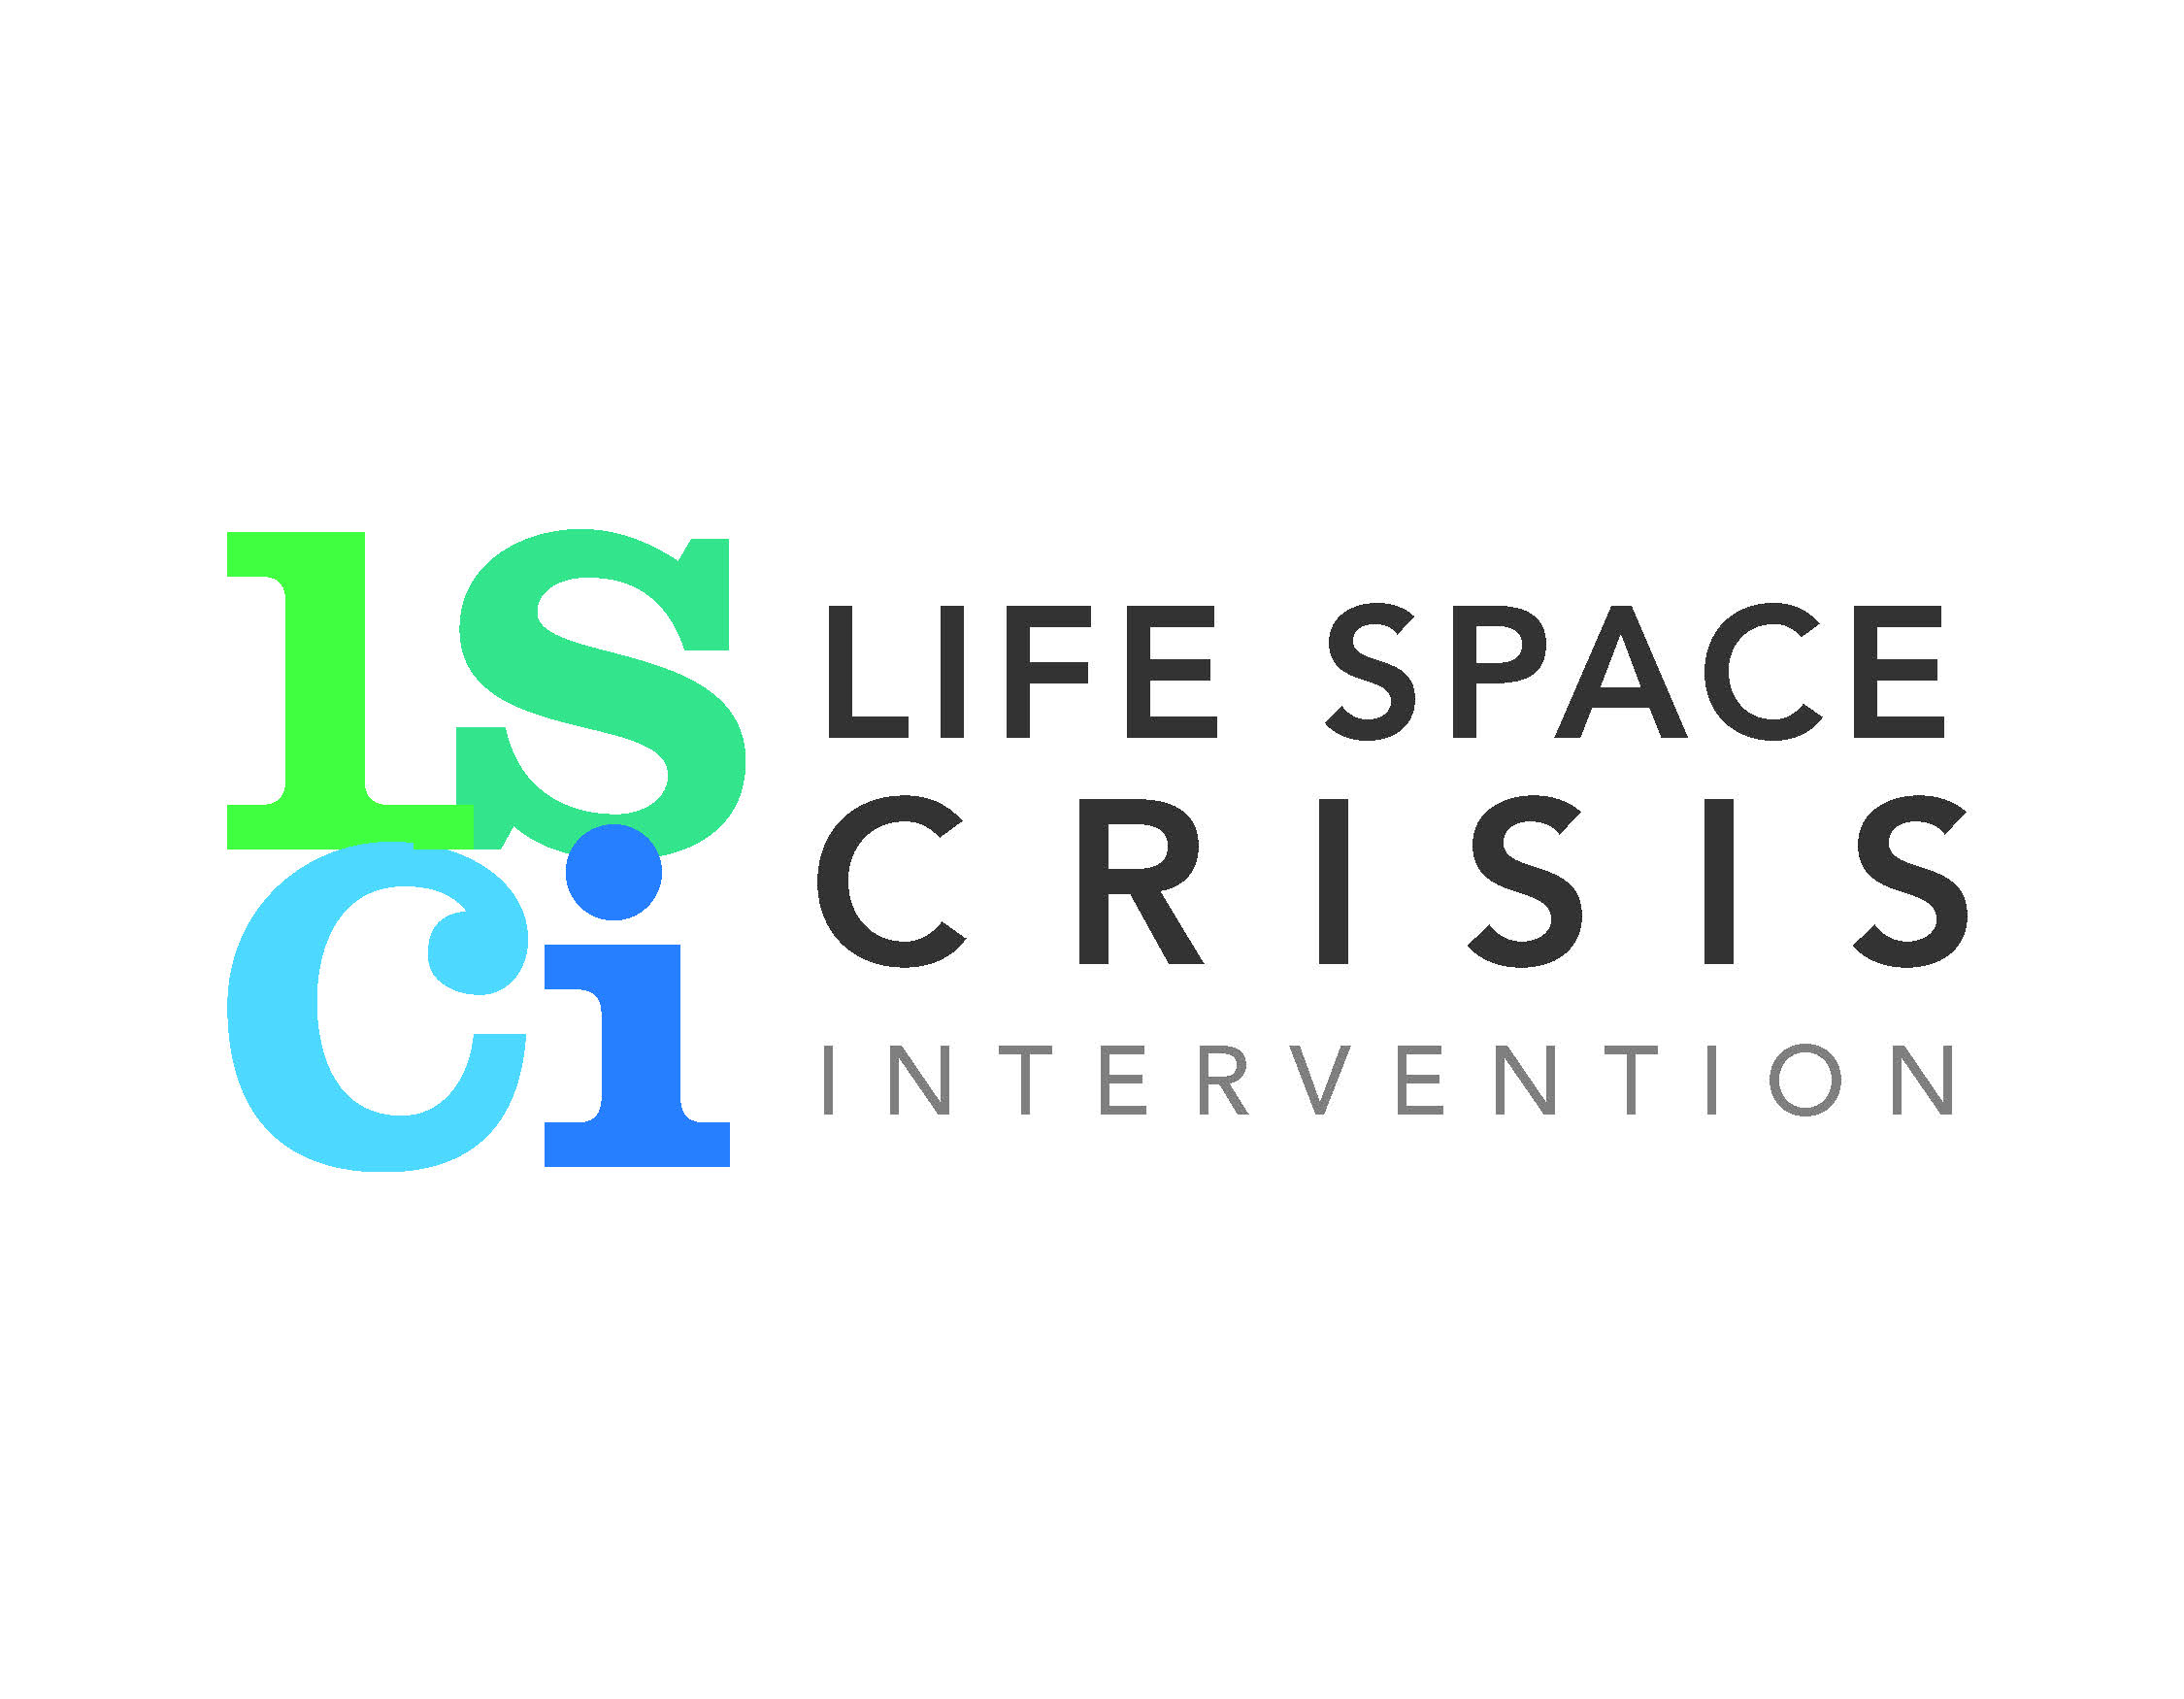 life space and science training program logo - photo #9